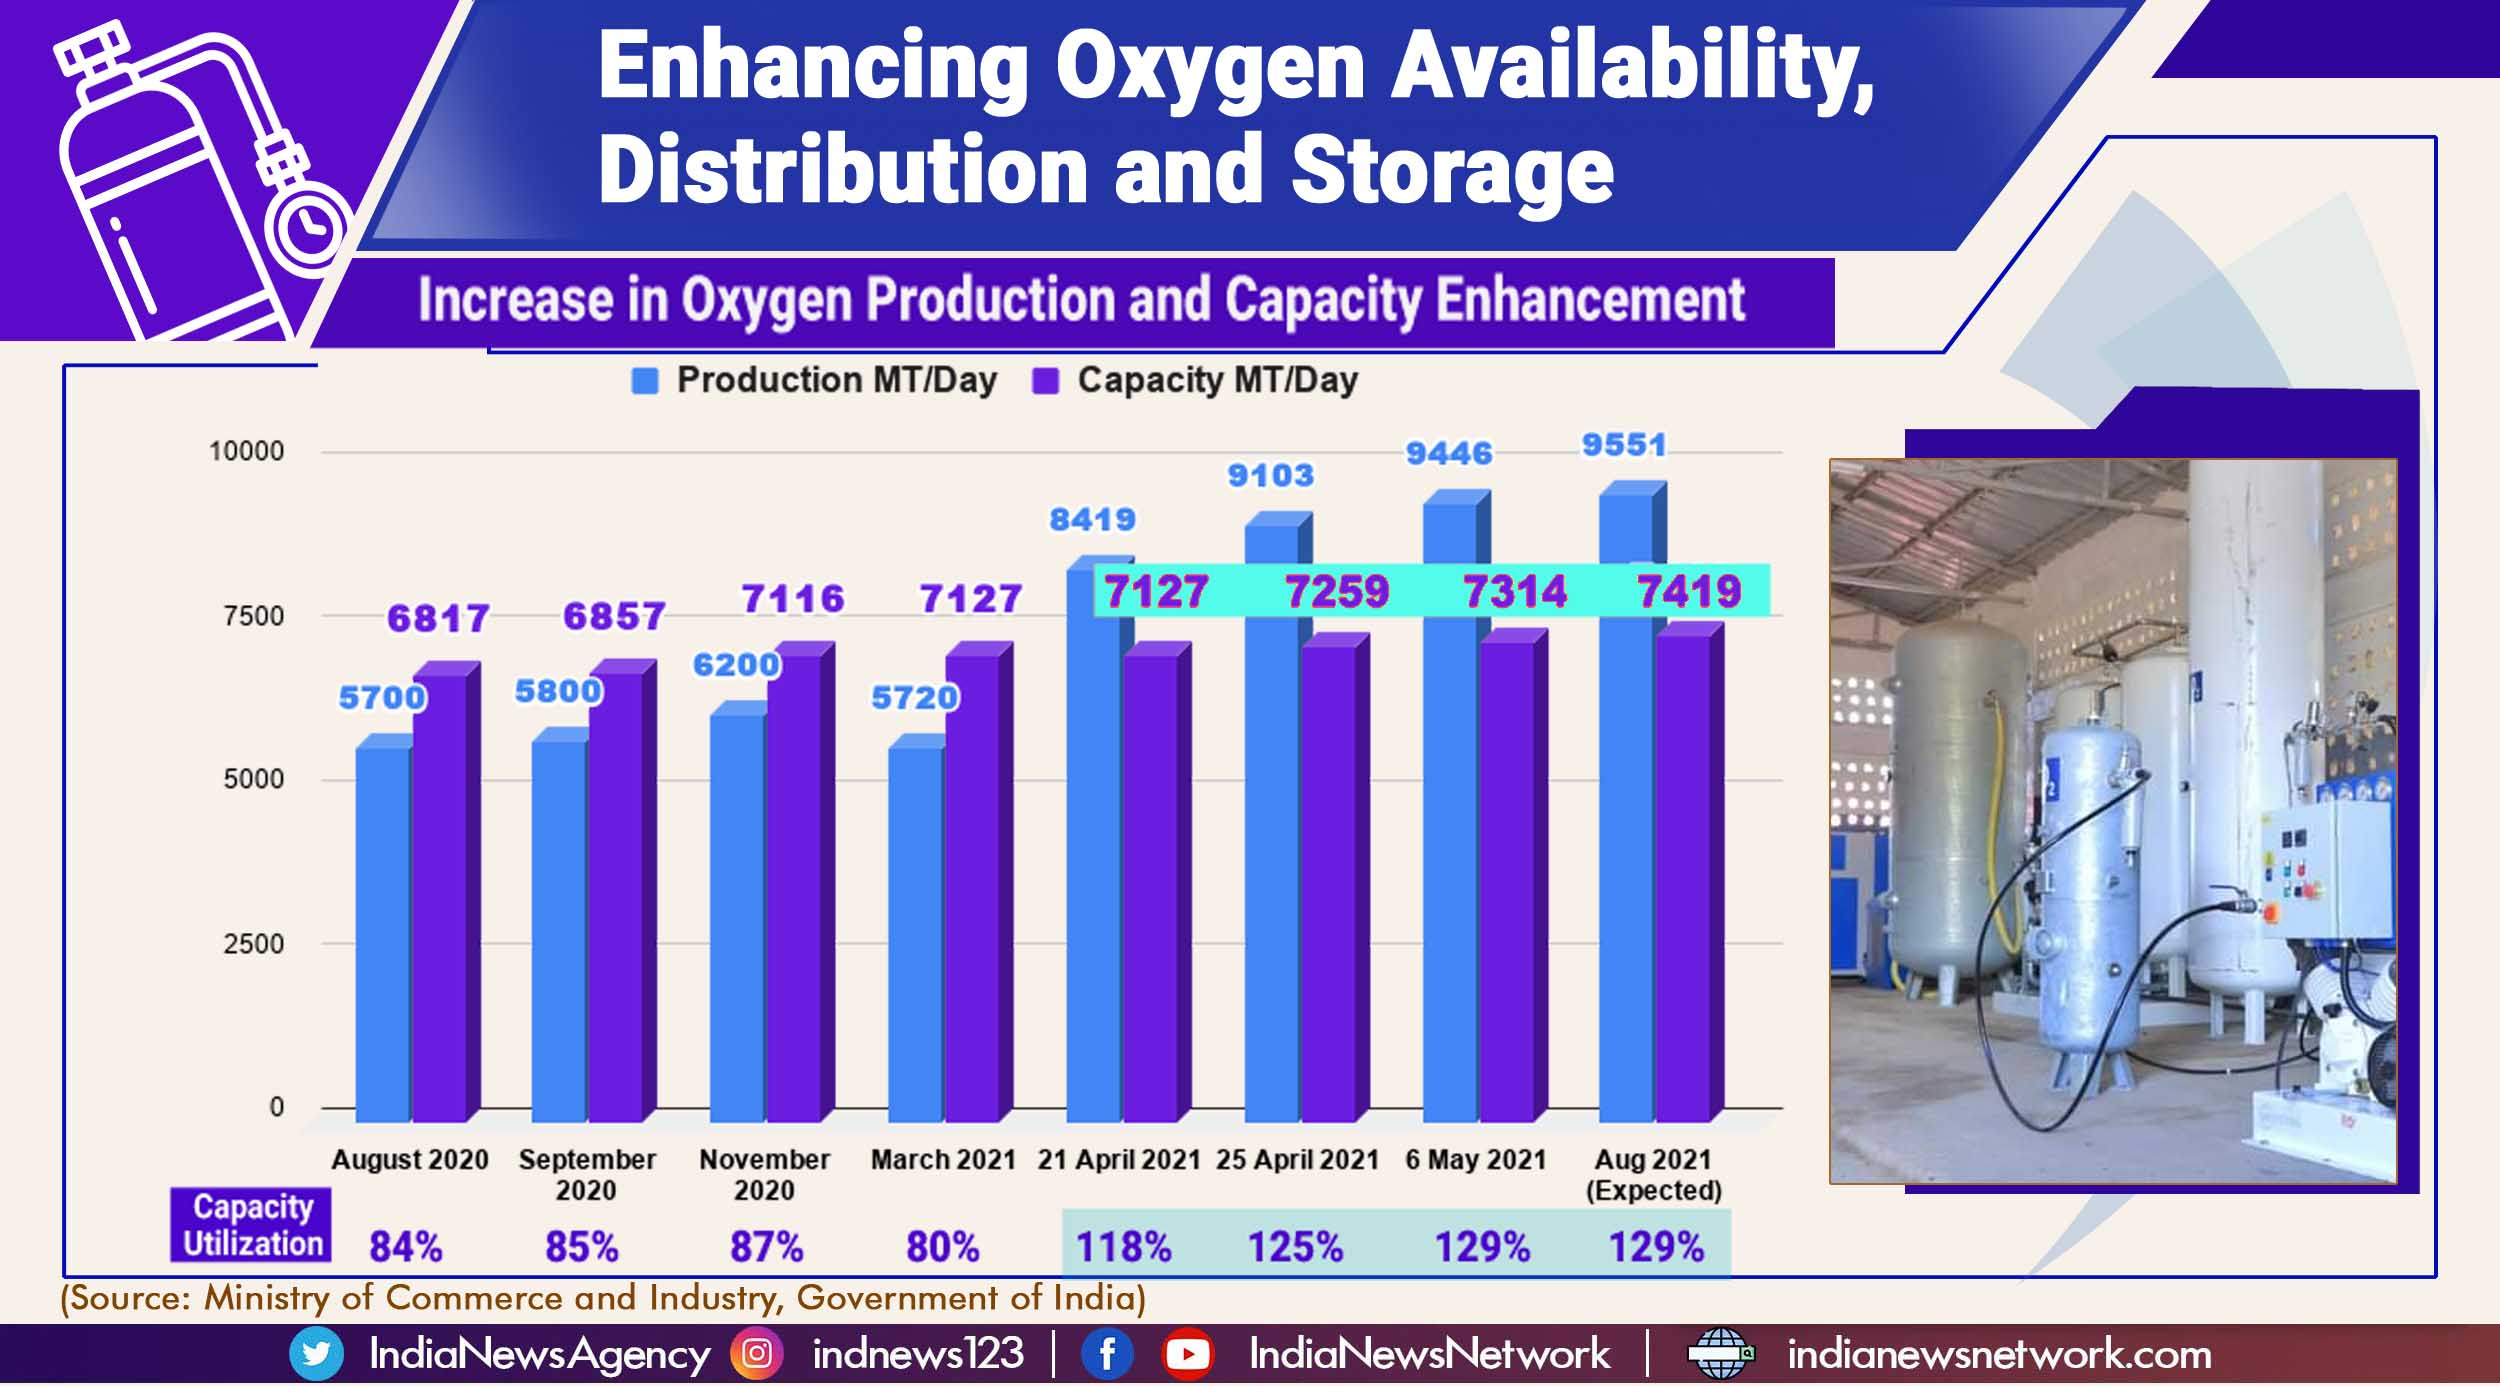 Oxygen for Covid-19 treatment: Central government steps in to increase supply, storage